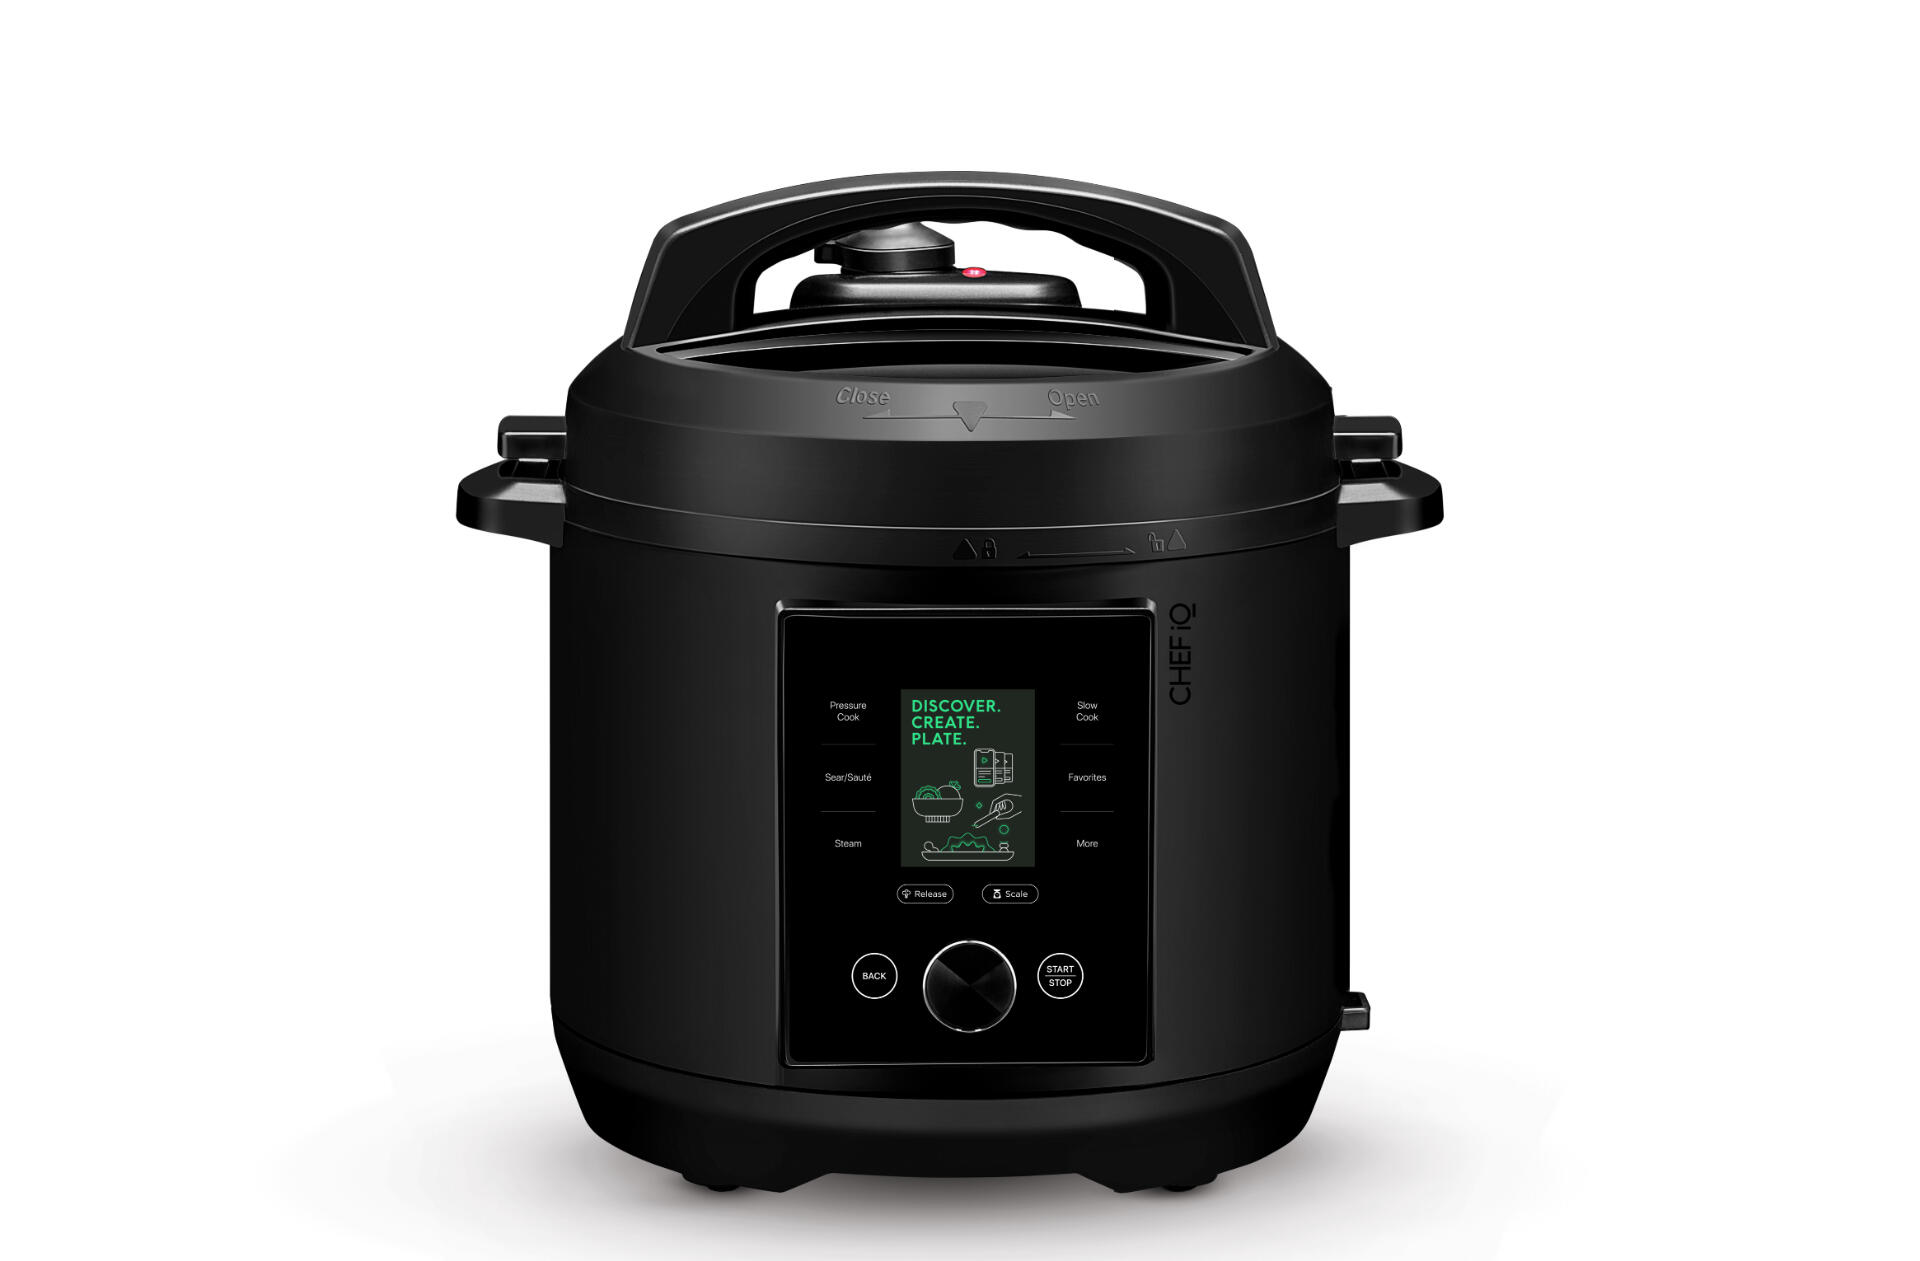 chef-iq-smart-cooker-hero-1